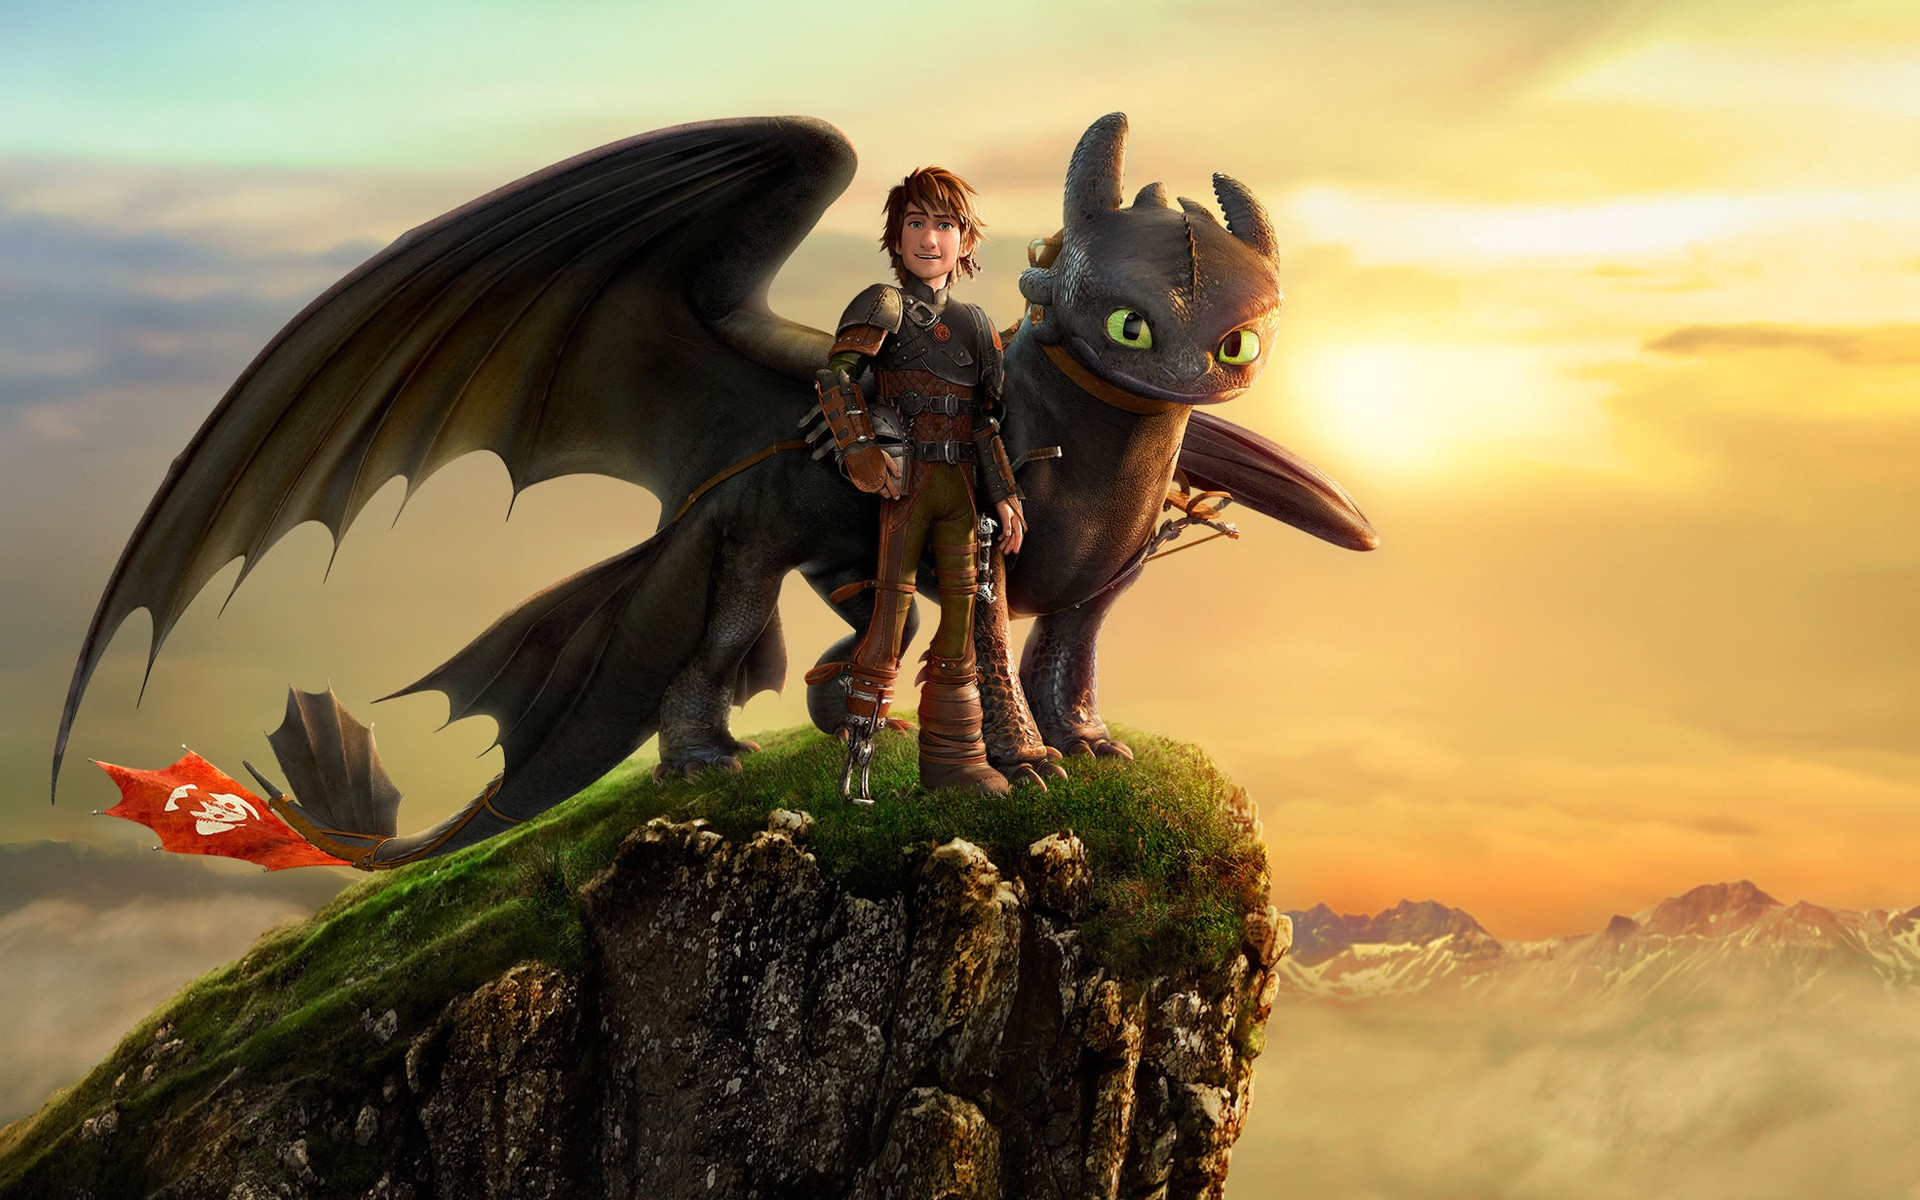 How To Train Your Dragon 3 Hd Movies 4k Wallpapers Images